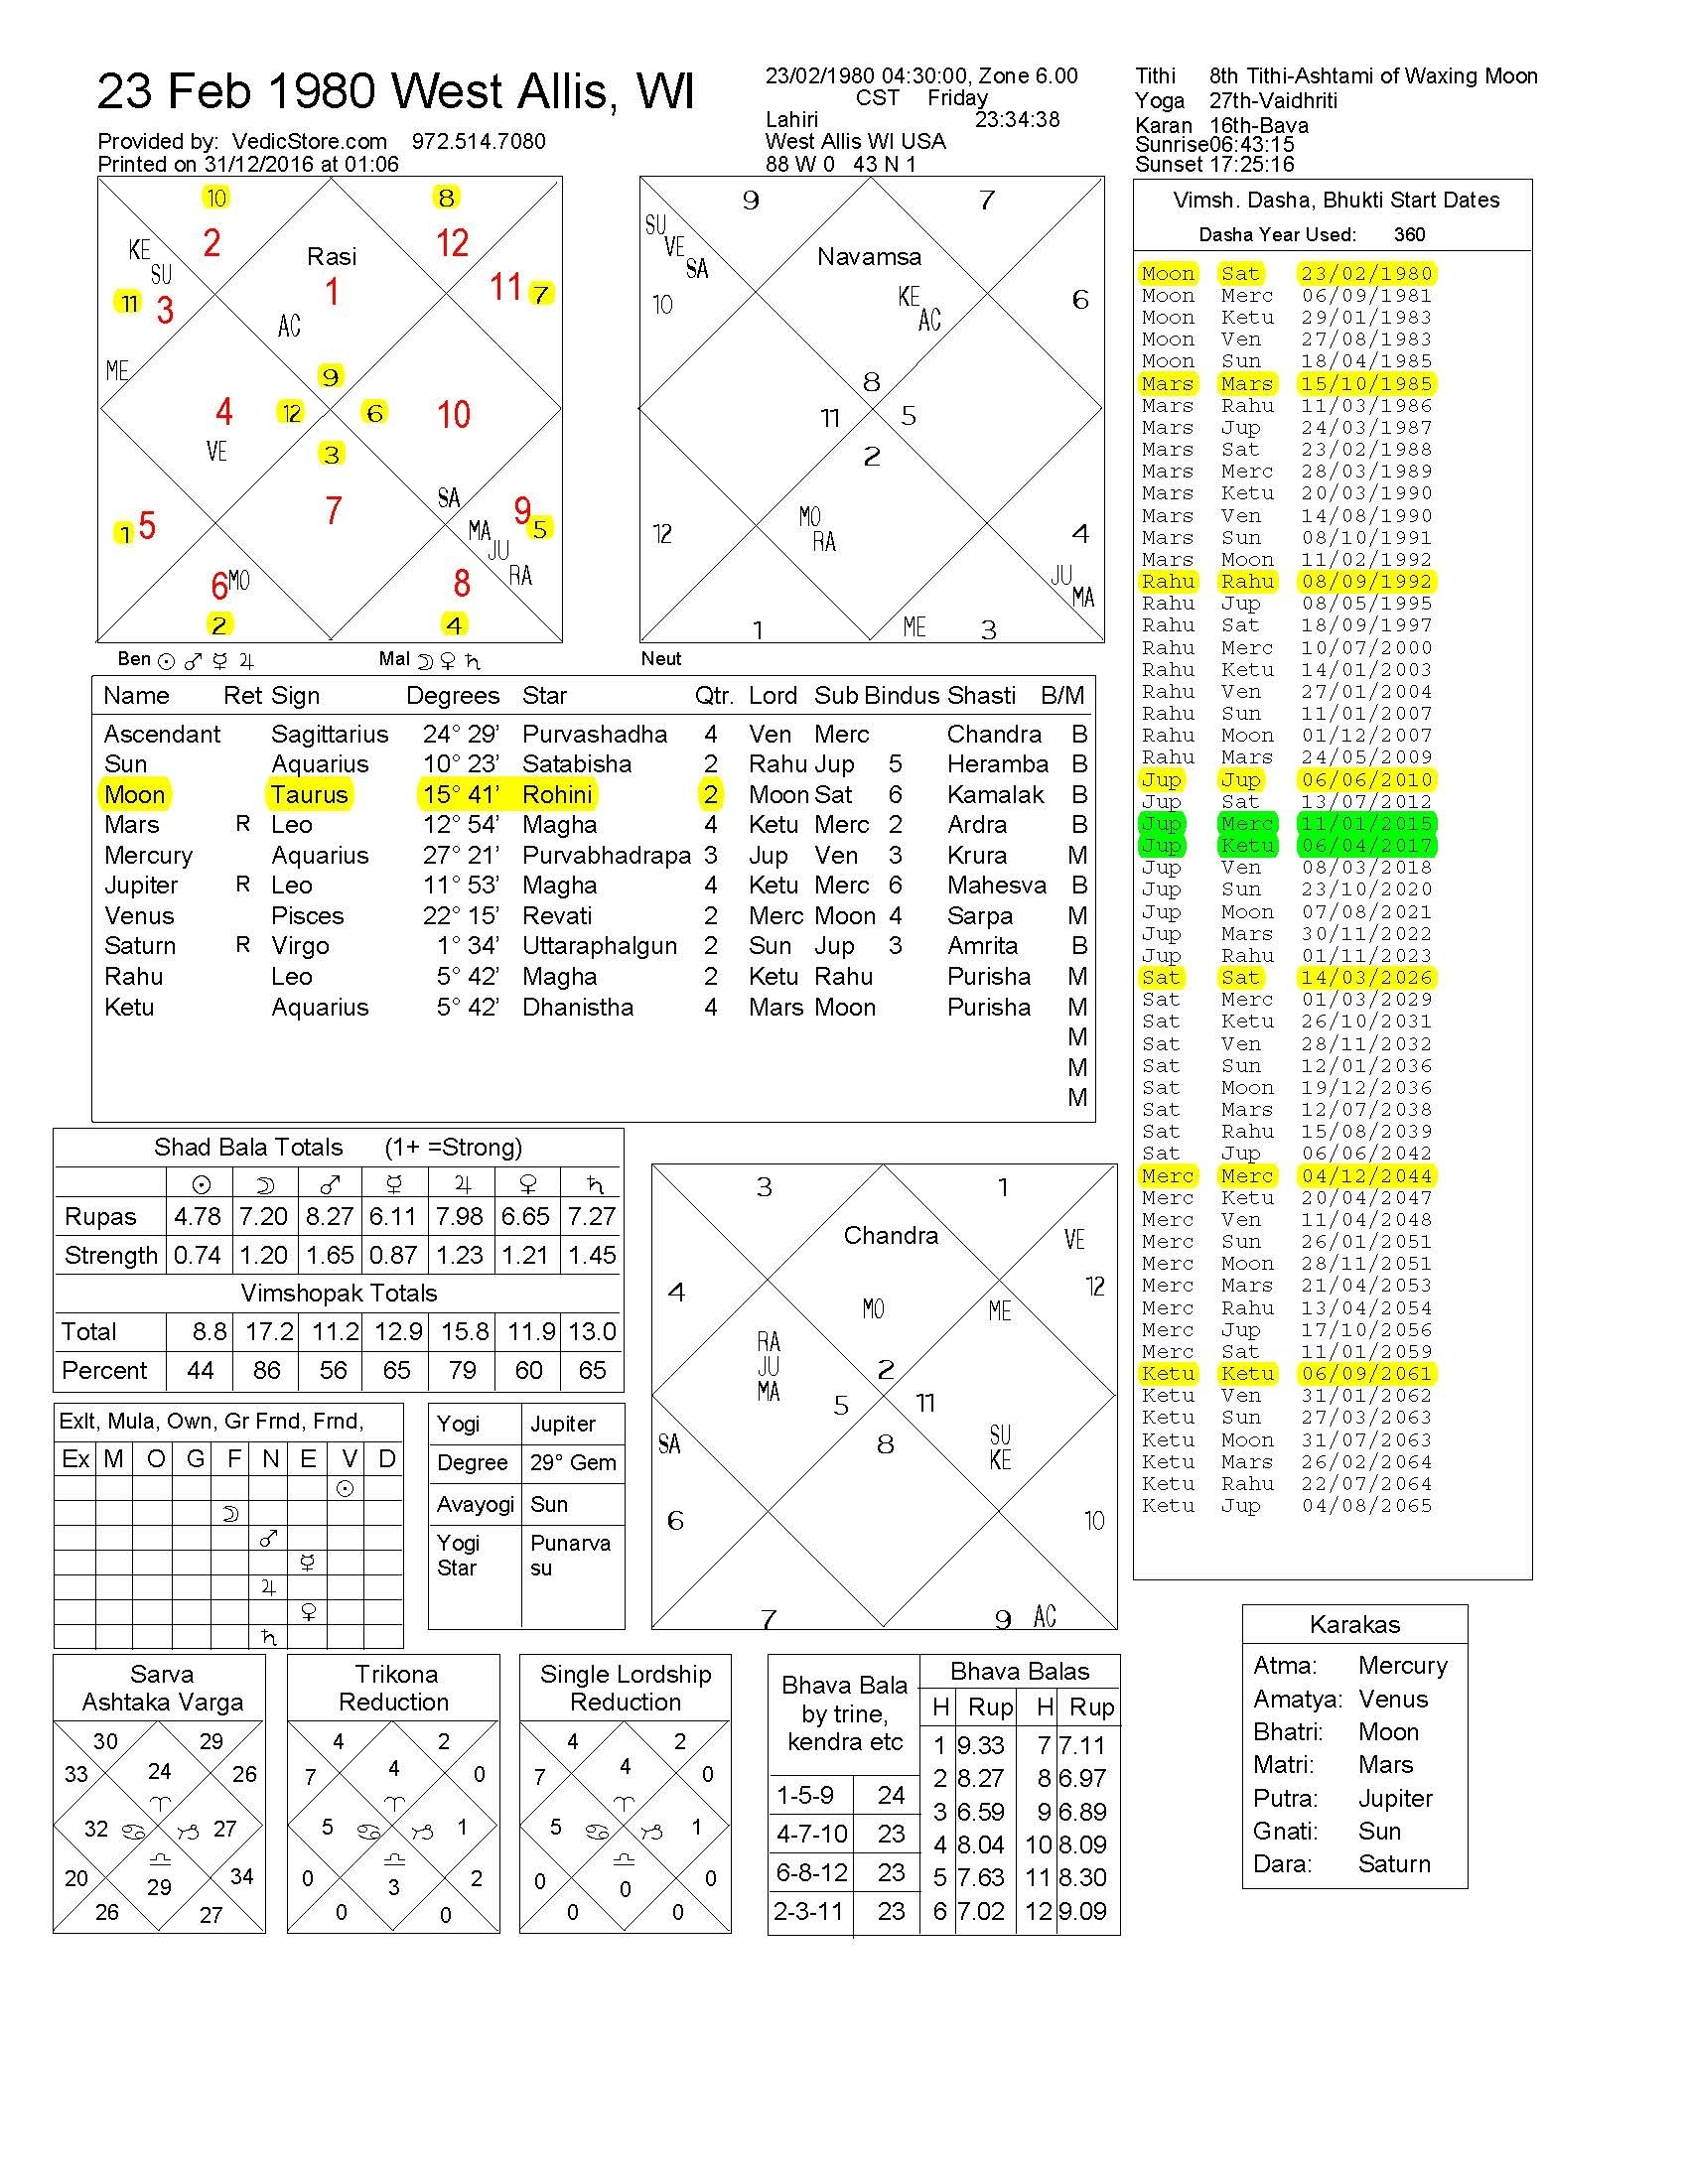 How to read a Birth Chart per Jyotish   Vedic Astrology The ...